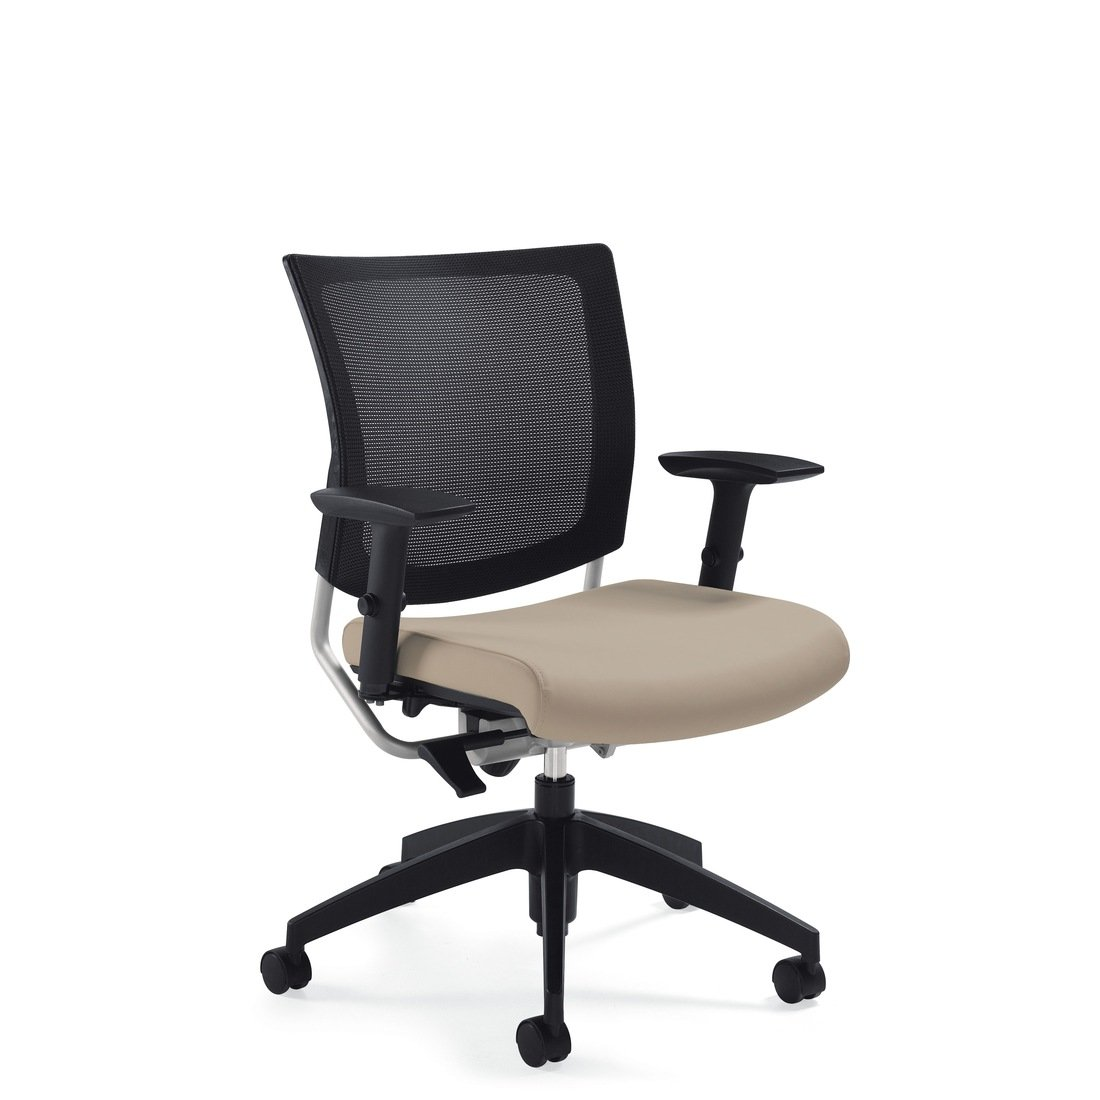 Graphic mesh posture back chair, model 2738MB. This chair has been placed on a white background.